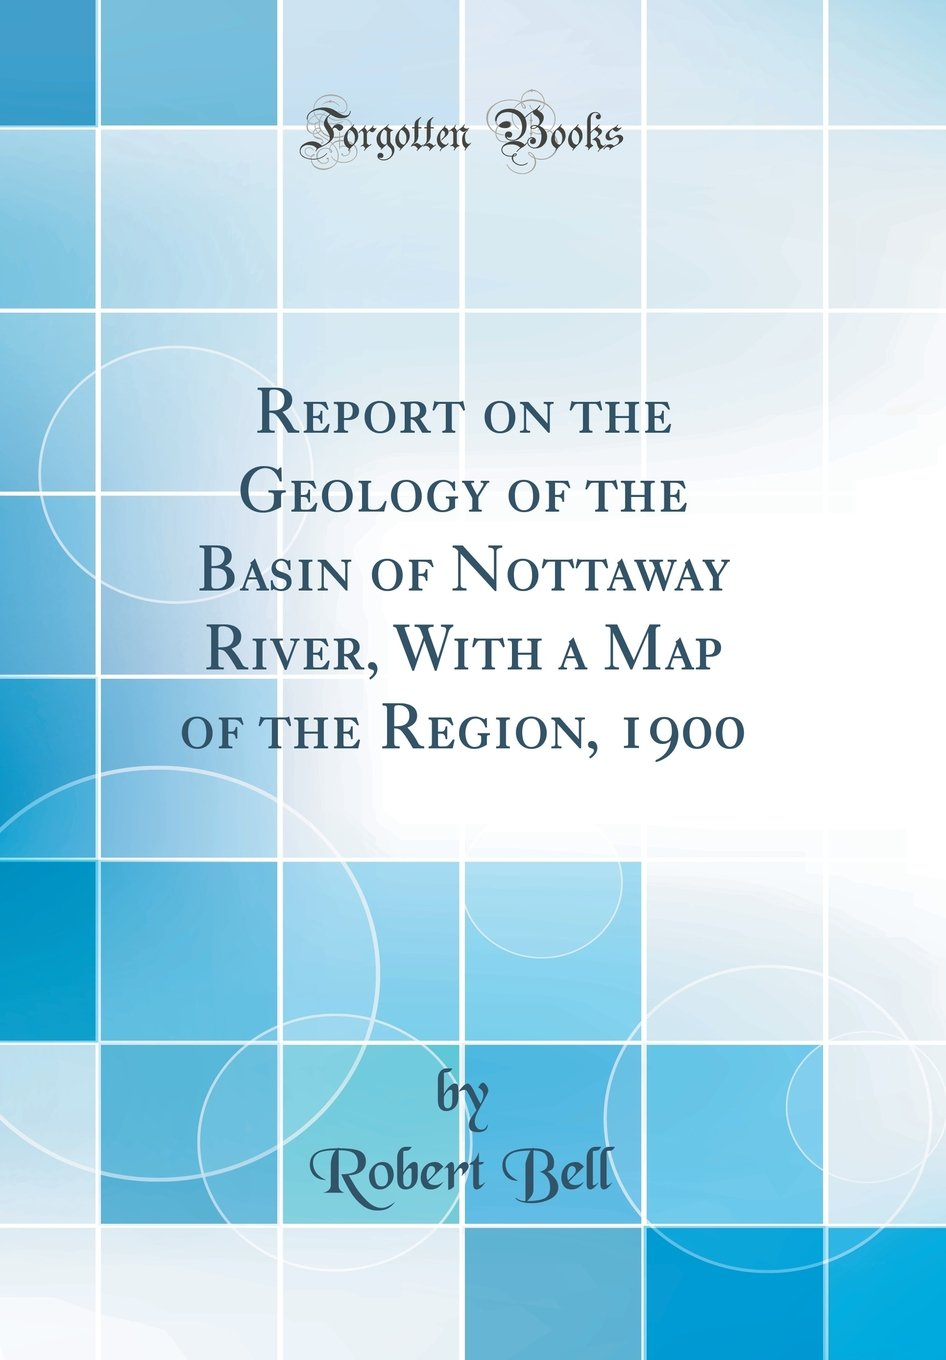 Download Report on the Geology of the Basin of Nottaway River, with a Map of the Region, 1900 (Classic Reprint) PDF